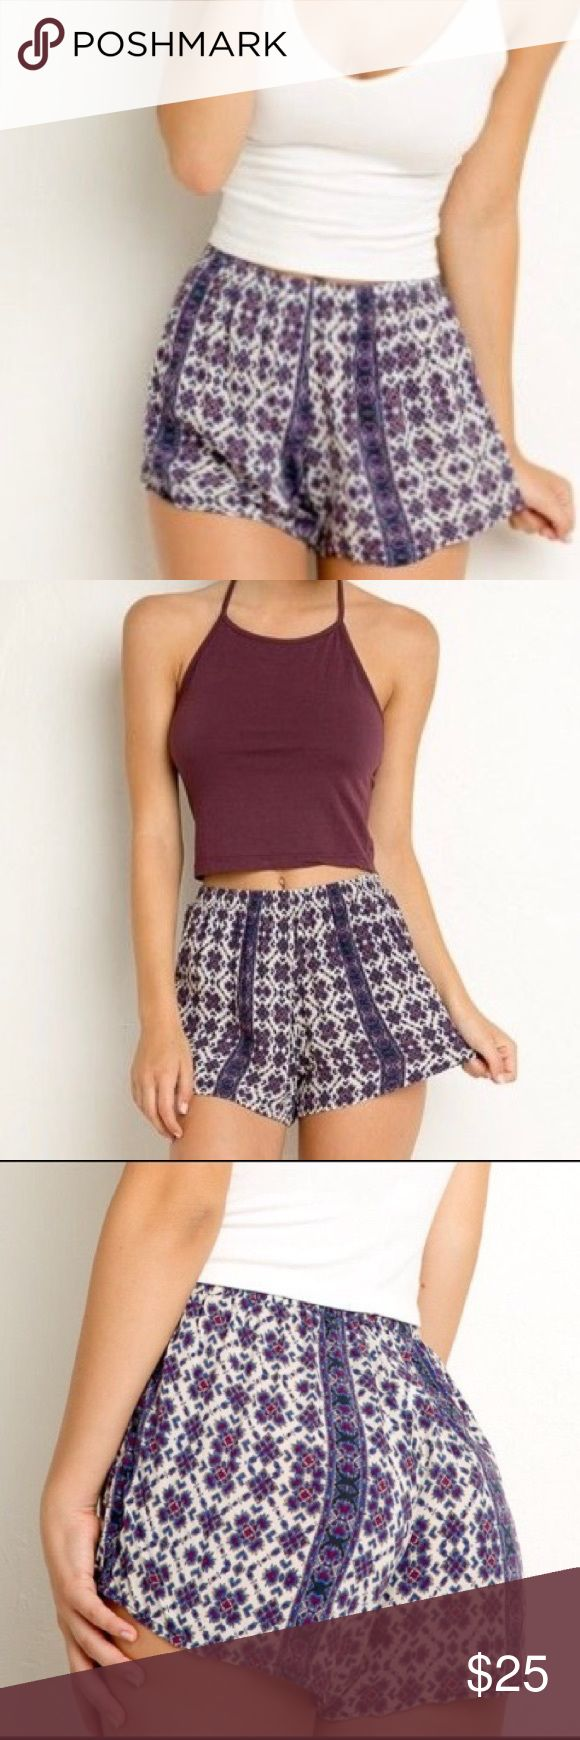 Brandy Melville Purple Aztec Remi Shorts Worn twice. In overall great condition! Just slightly wrinkly. ONE SIZE. Brandy Melville Shorts